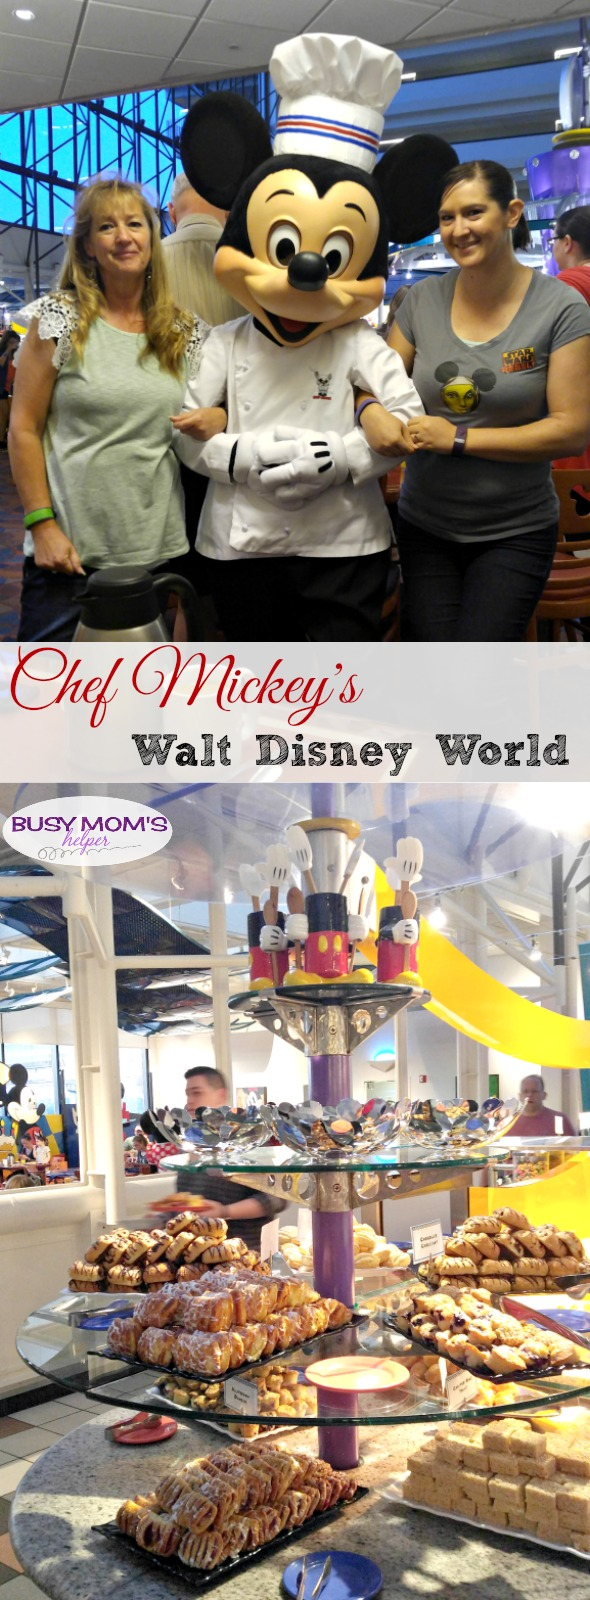 Chef Mickey's Breakfast at Walt Disney World